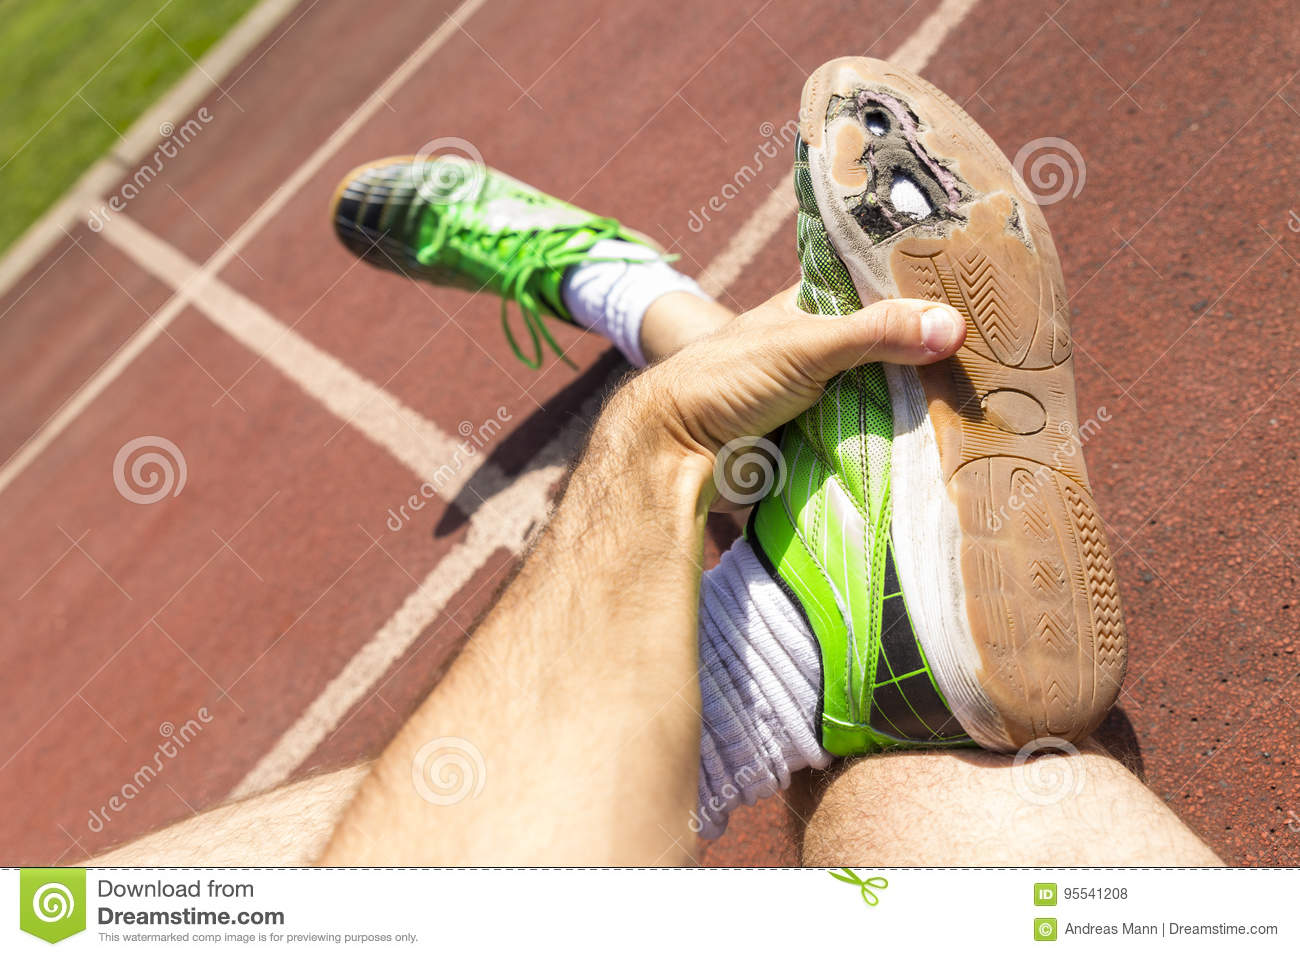 Athlete With Broken Green Running Shoes Stock Photo ...